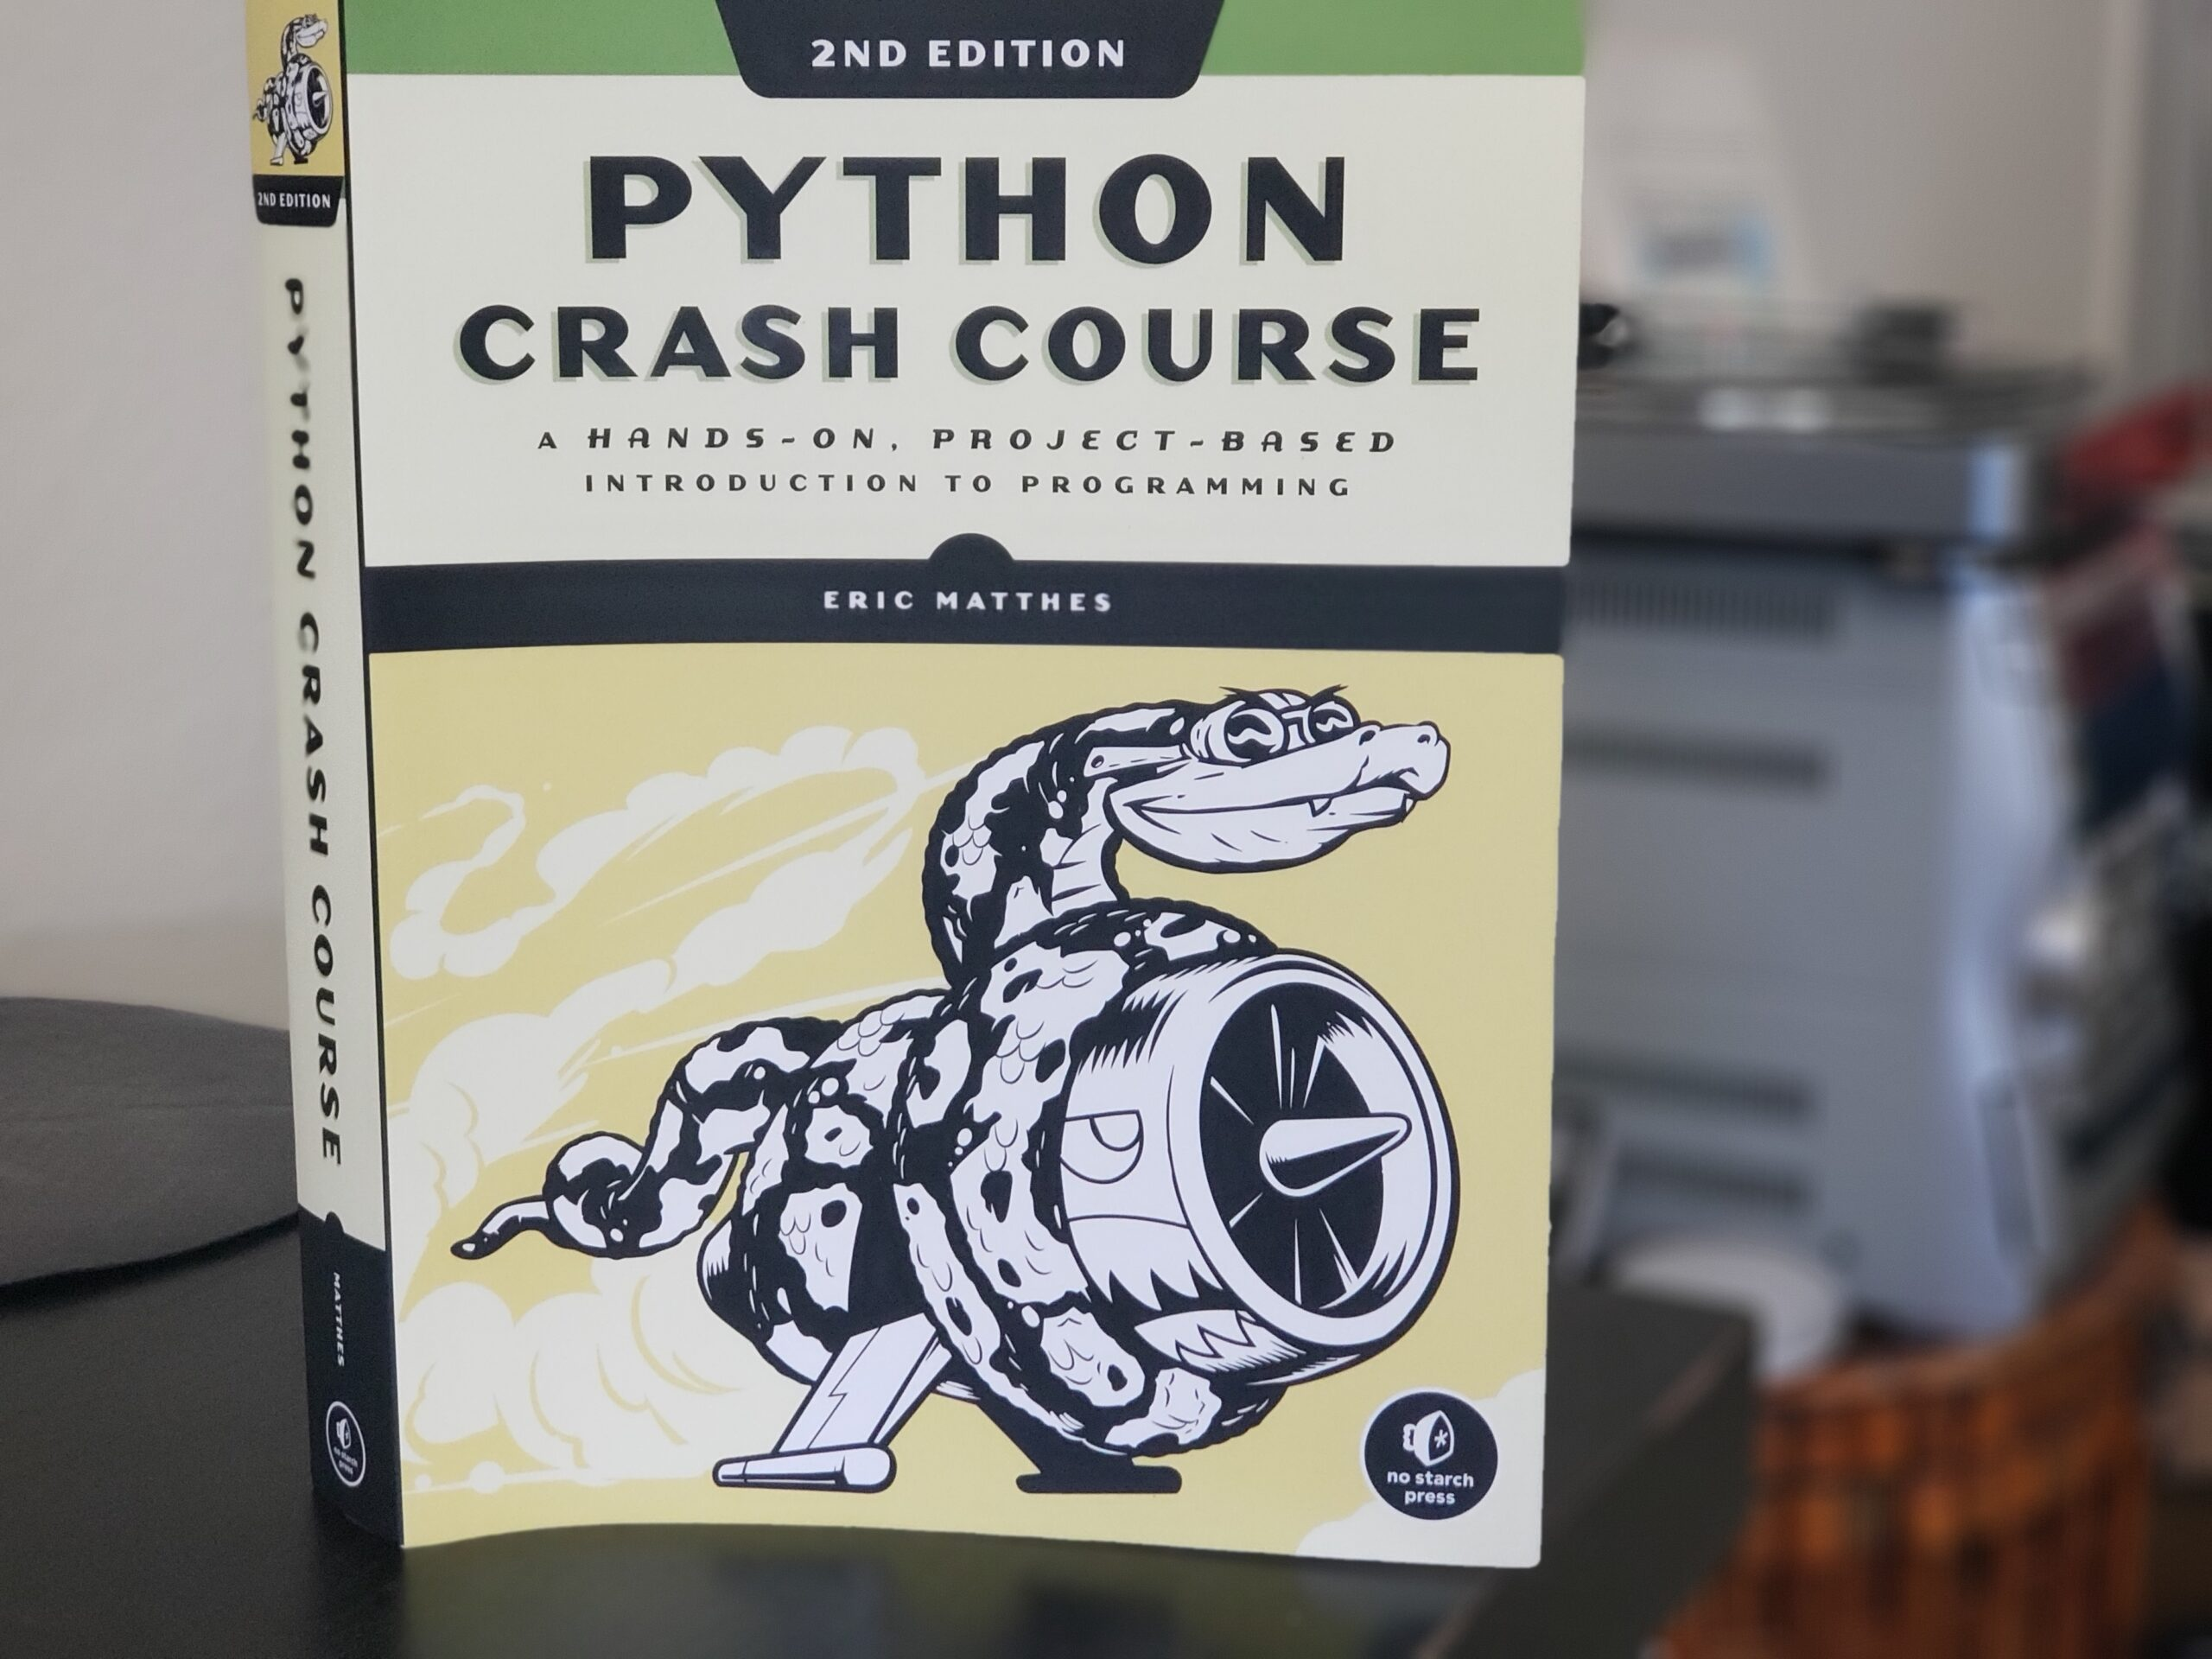 Python Crash Course book cover. Photo by: Matthew McGuire